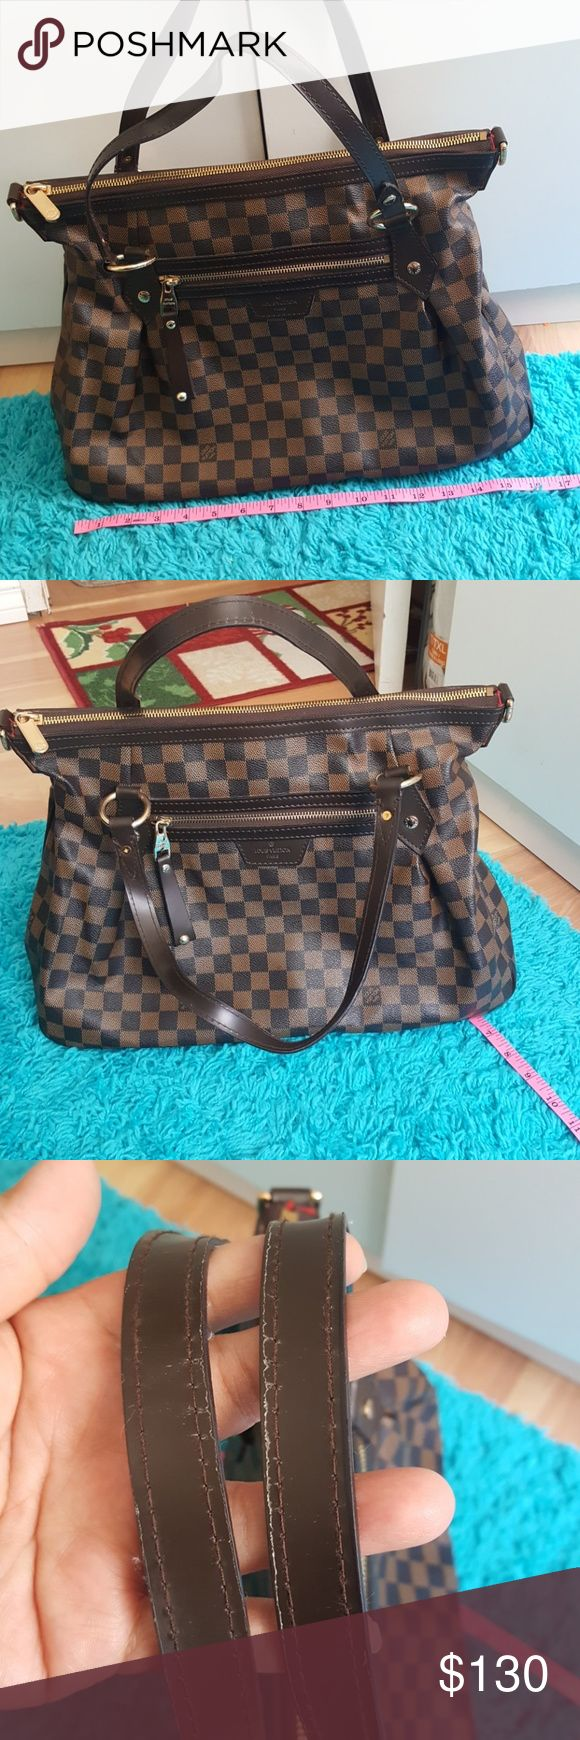 NOT REAL LOUIS VUITTON BAG😎😎 PLEASE READ:...NOT AUTHENTIC LOUIS VUITTON BAG..in great condition😉..please see pictures for very minimal used..corners and bottom of the bag are in great clean condition.. outside is clean, inside is clean just some pen marks...handles are still in great shape just see pics pls...make an offer . rep. louis vuitton Bags Satchels